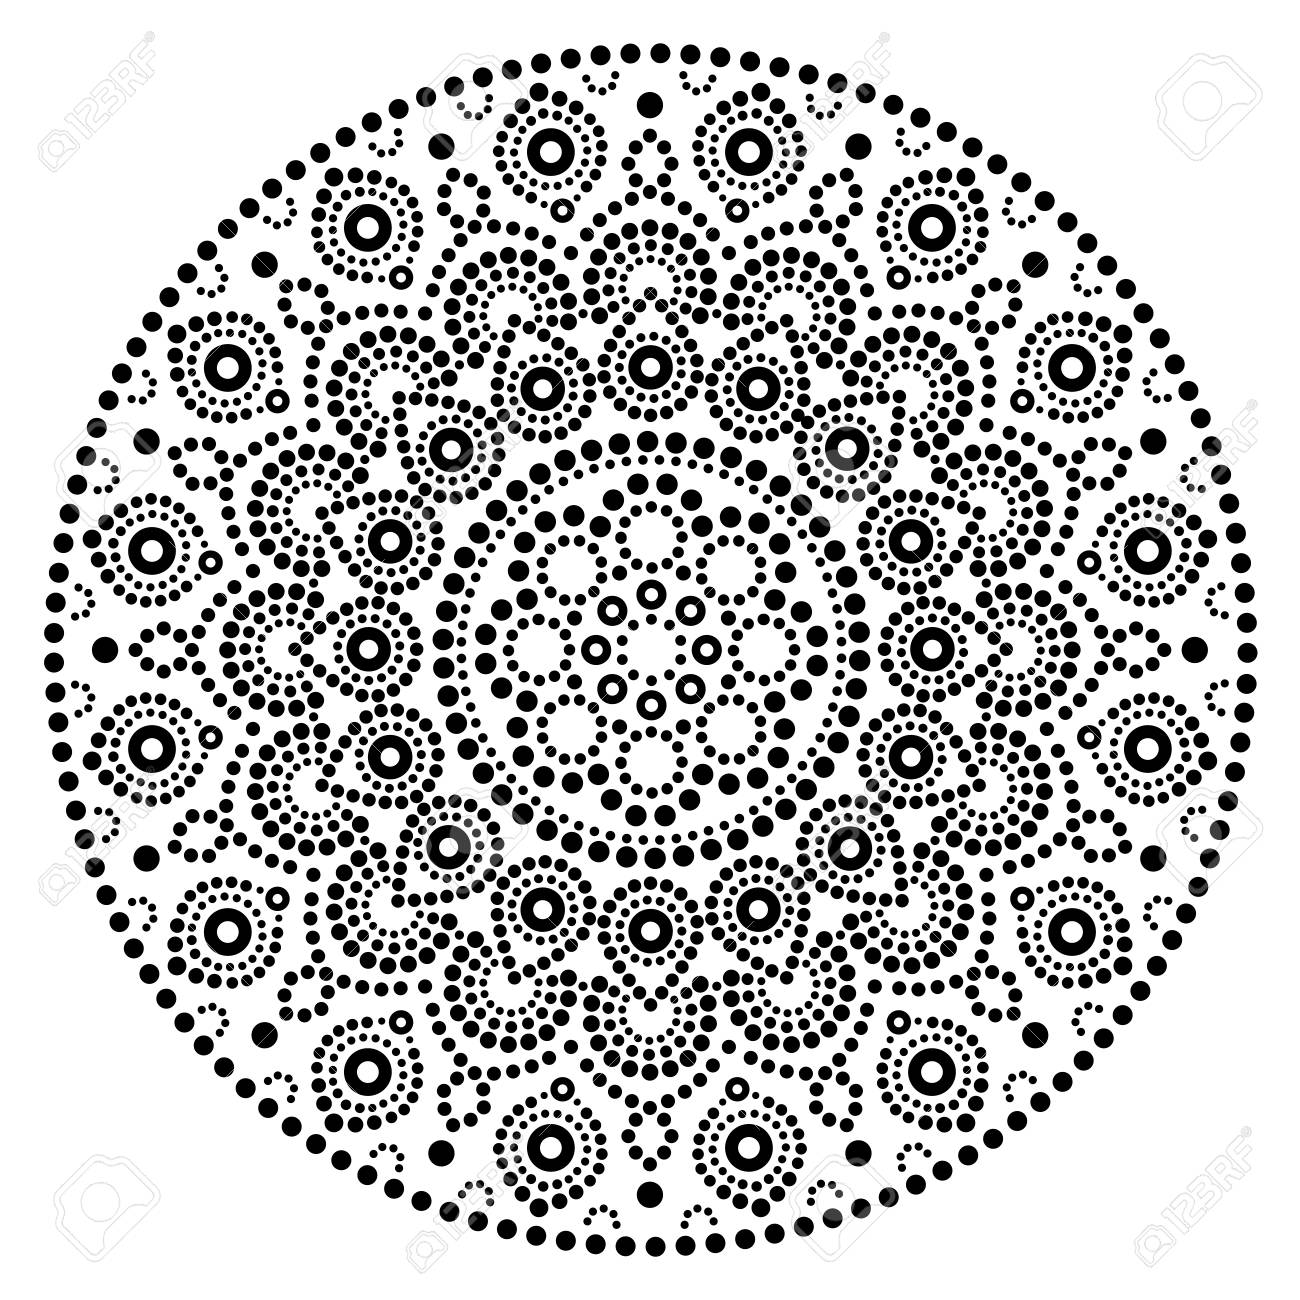 Mandala vector art australian dot painting black and white design aboriginal folk art bohemian